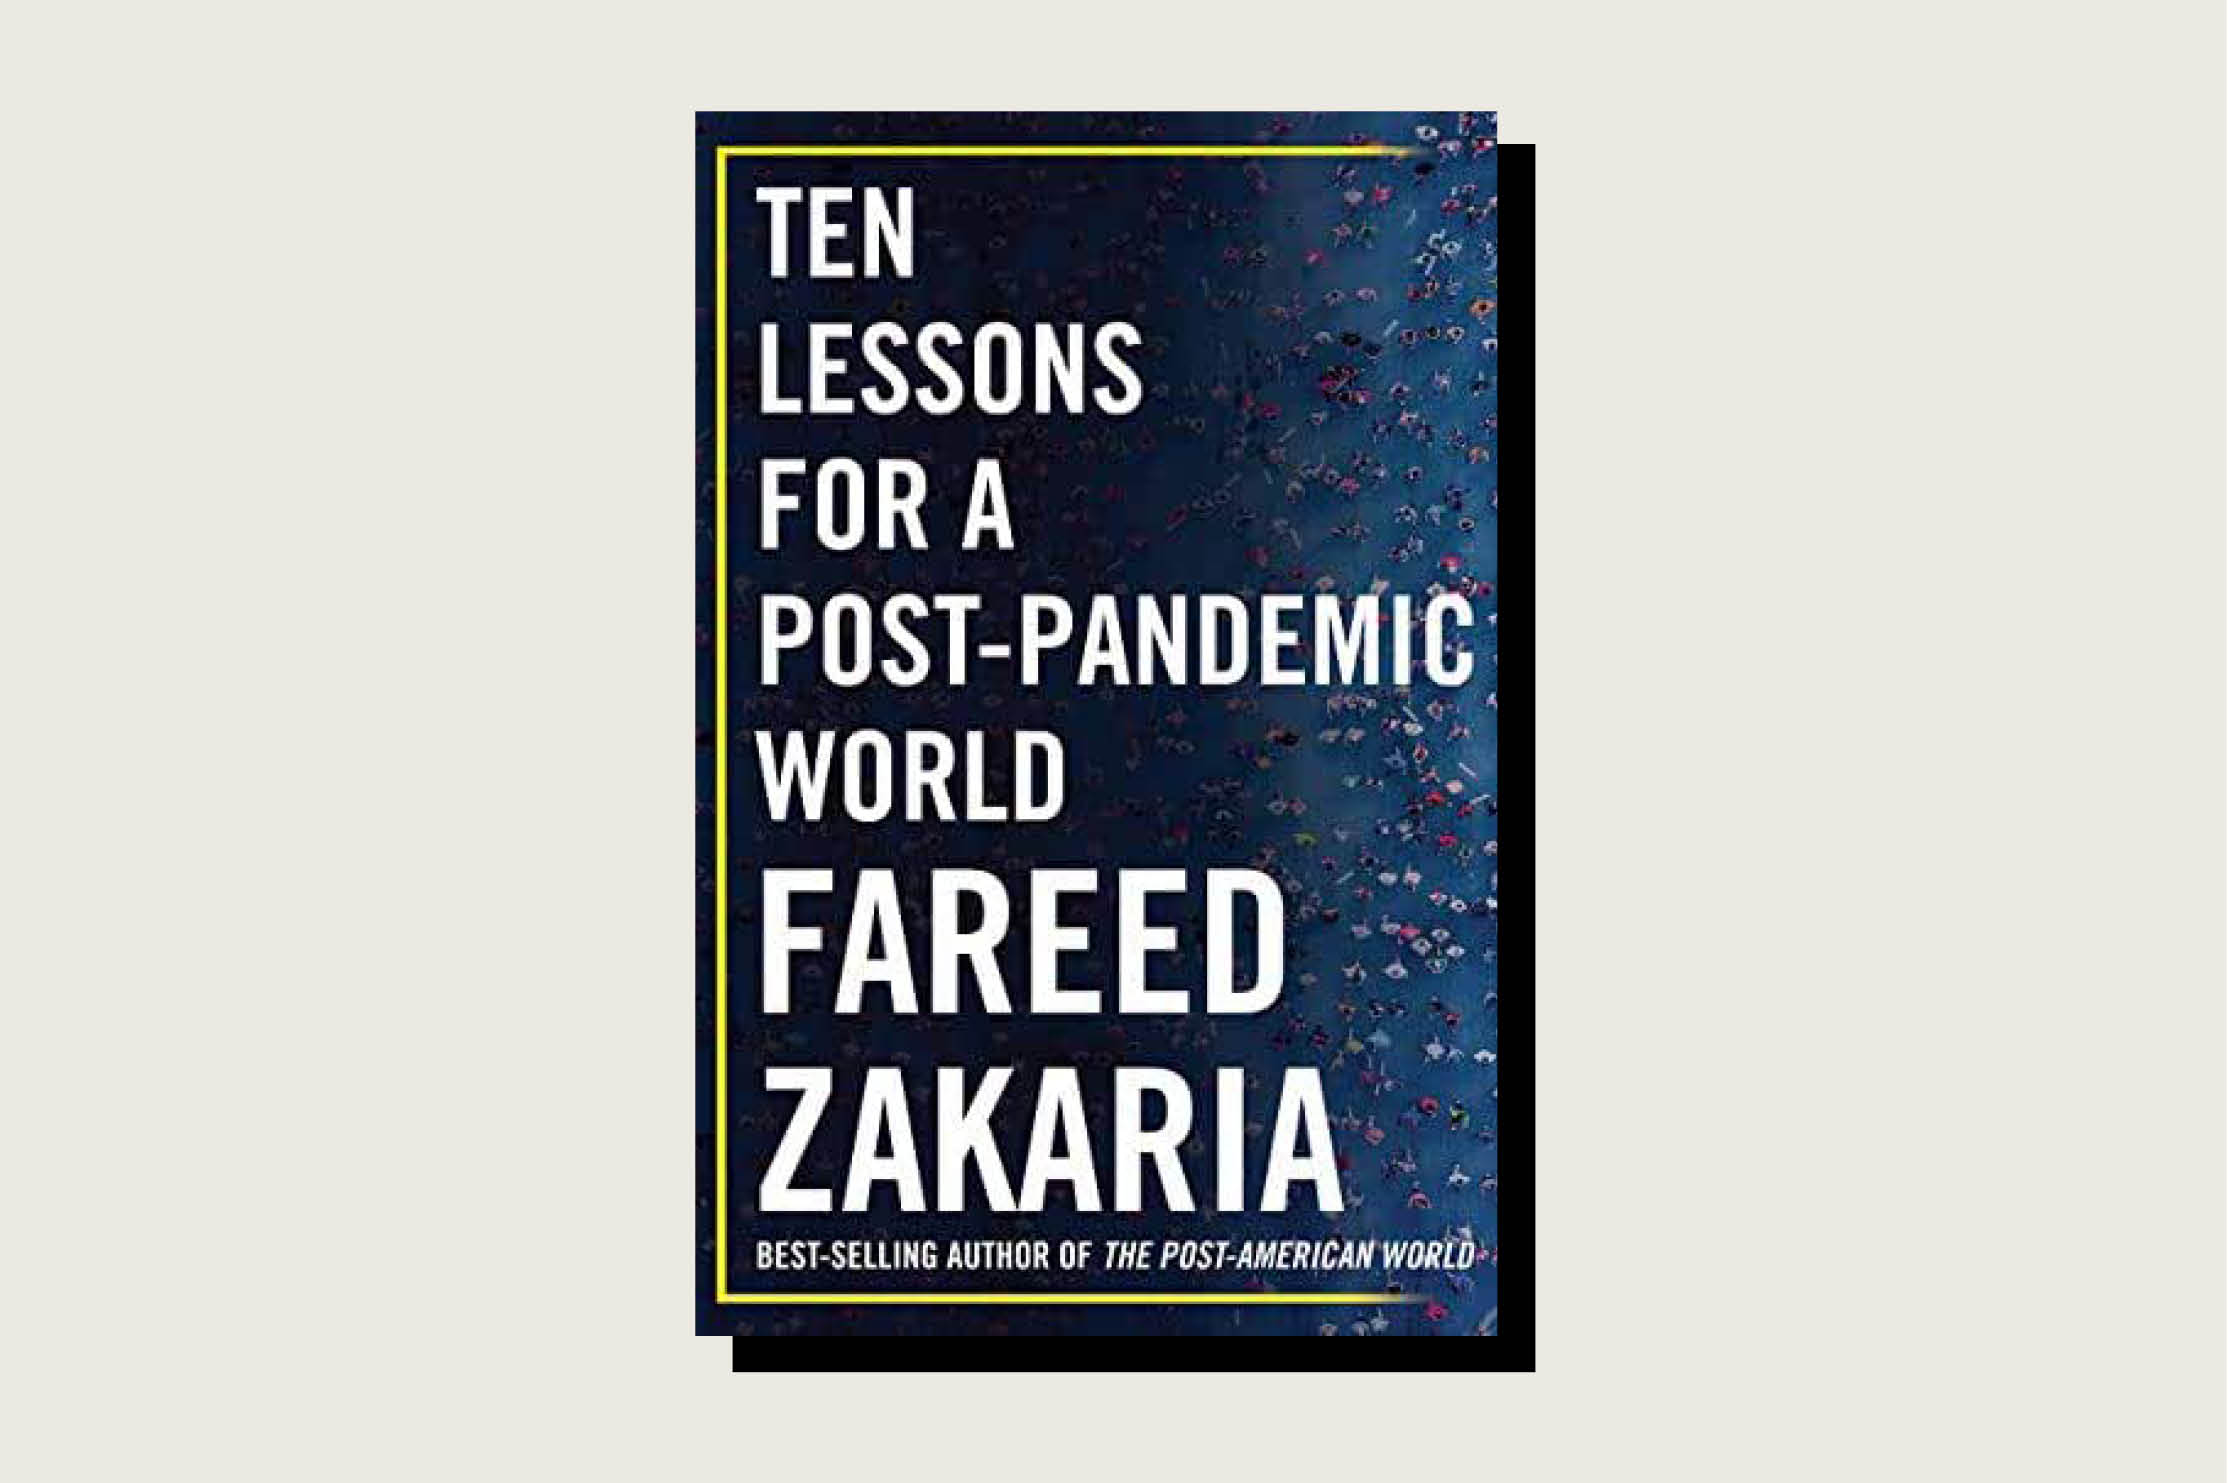 Ten Lessons for a Post-Pandemic World, Fareed Zakaria, W. W. Norton, 320 pp., .95, October 2020